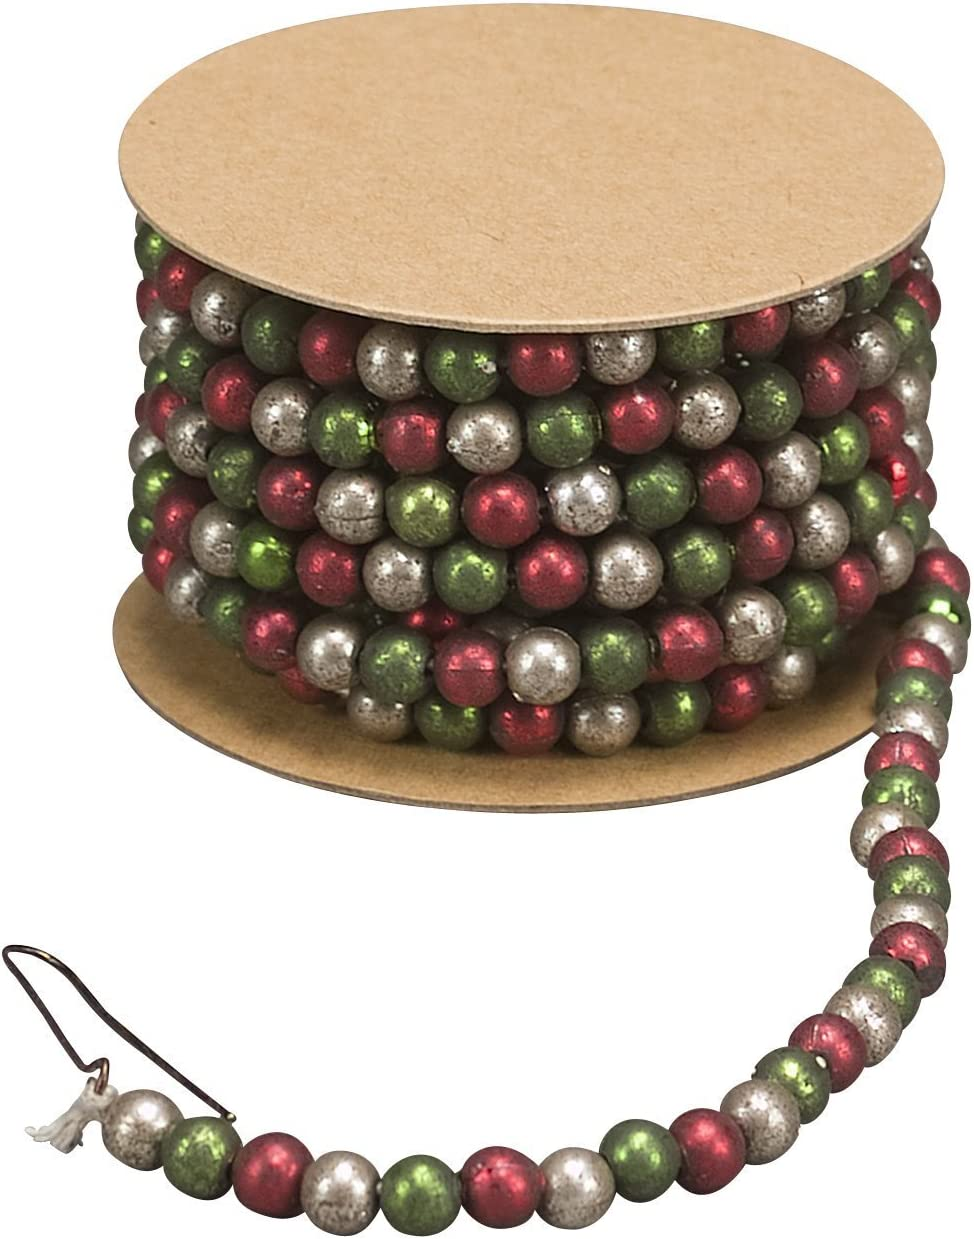 Primitives by Kathy Mini Green Red and White Bead Garland Spool 6 Foot Christmas Decoration 21843